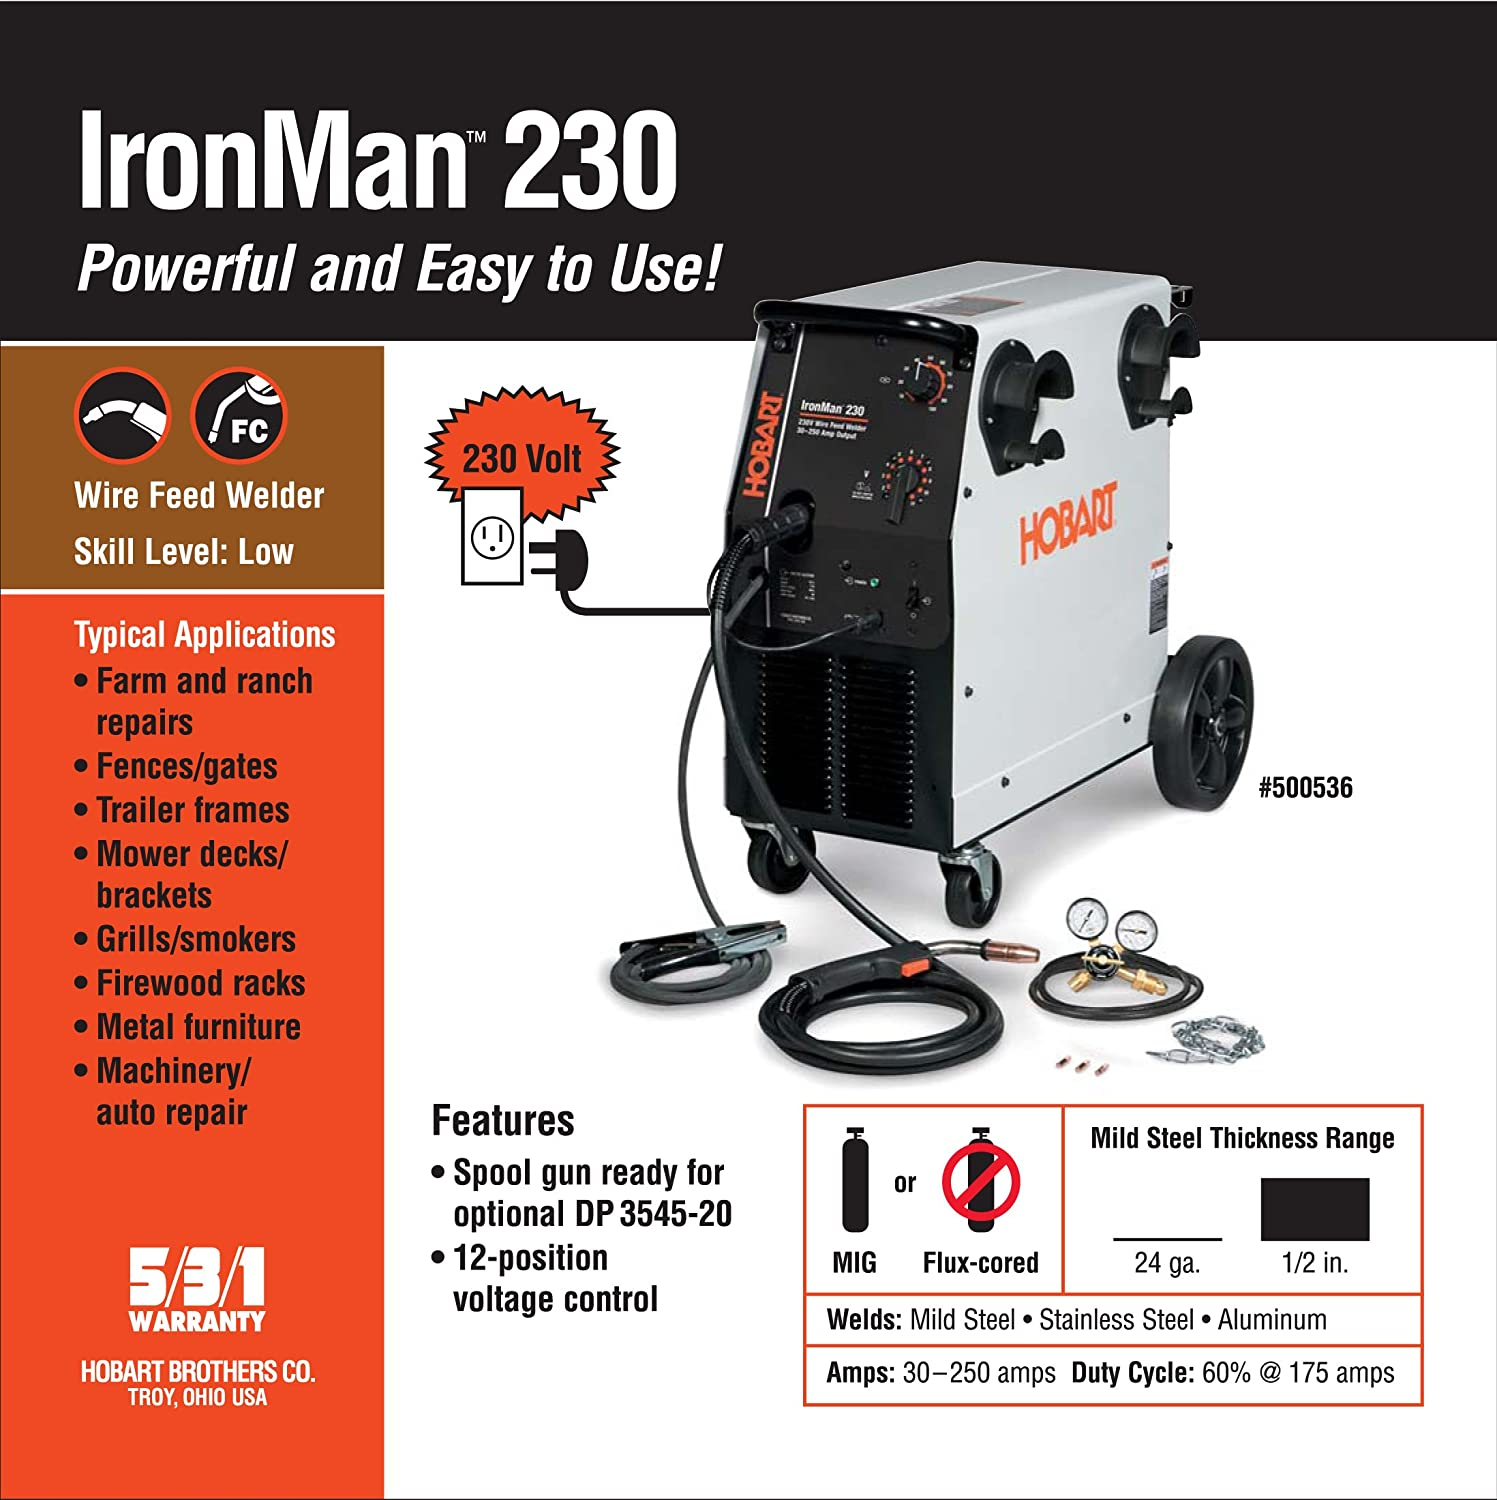 Hobart 500536 Ironman 230 MIG Welder With Wheel Kit & Cylinder Rack ...